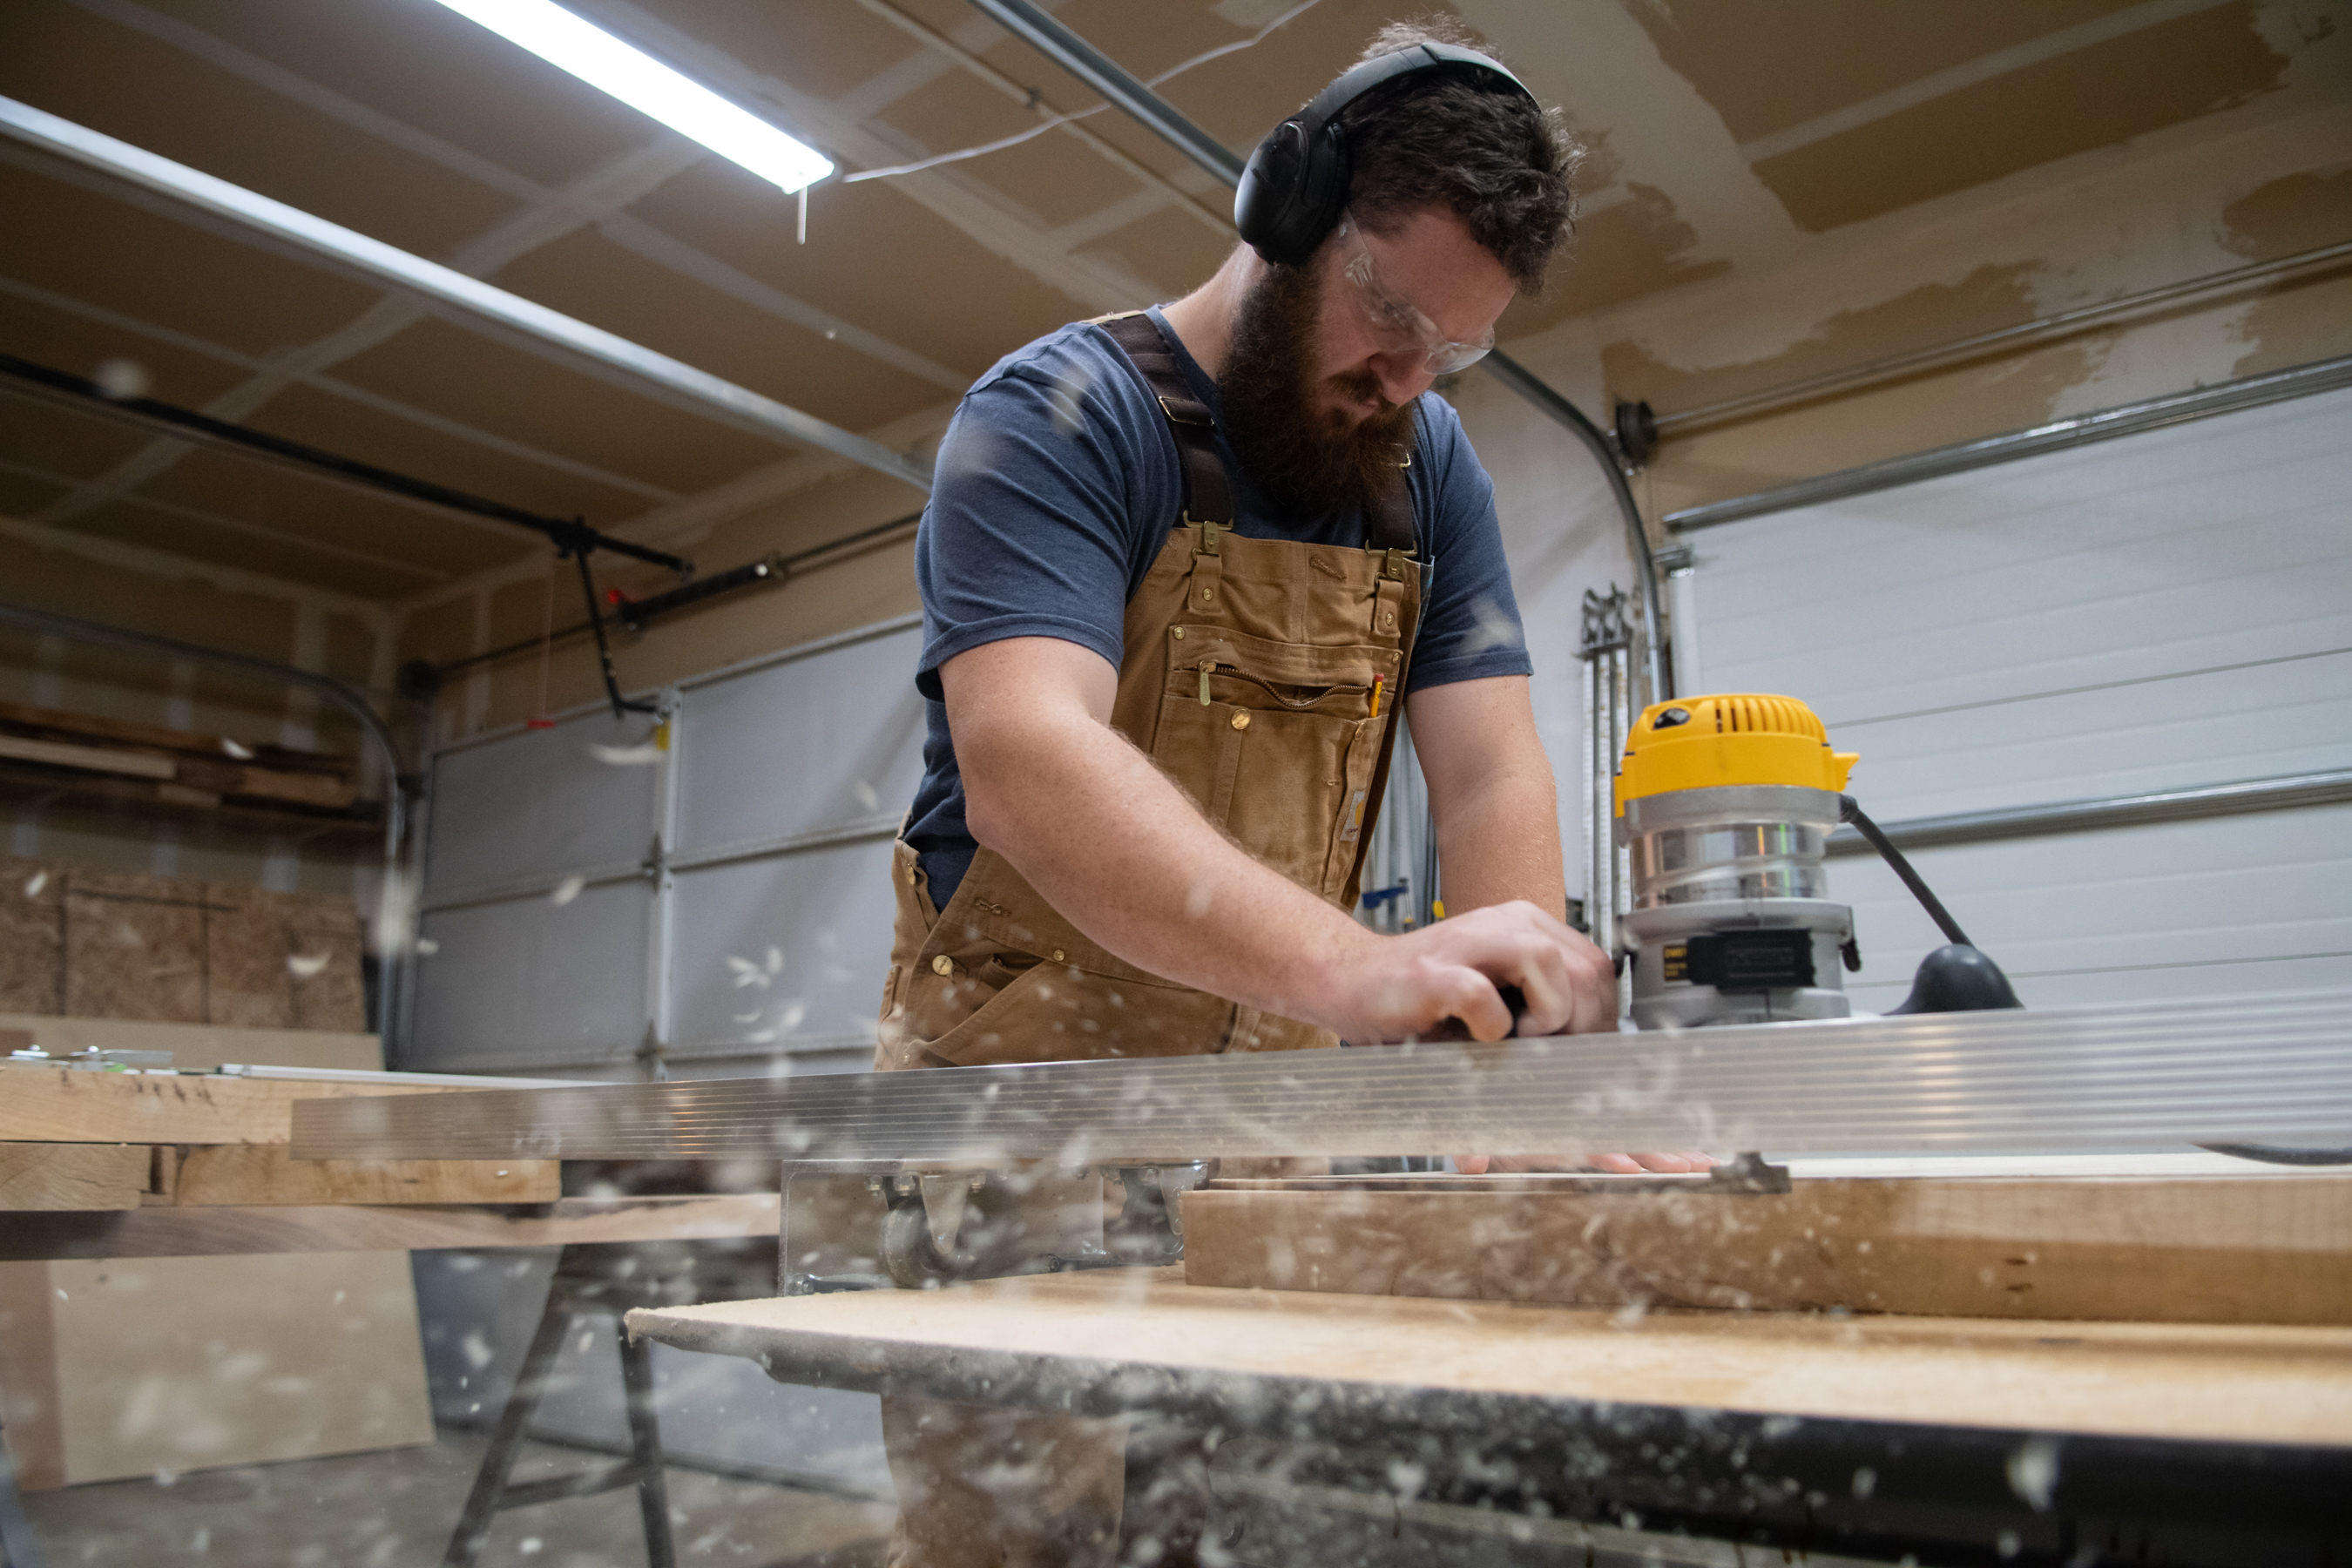 Alex sanding wood in his shop